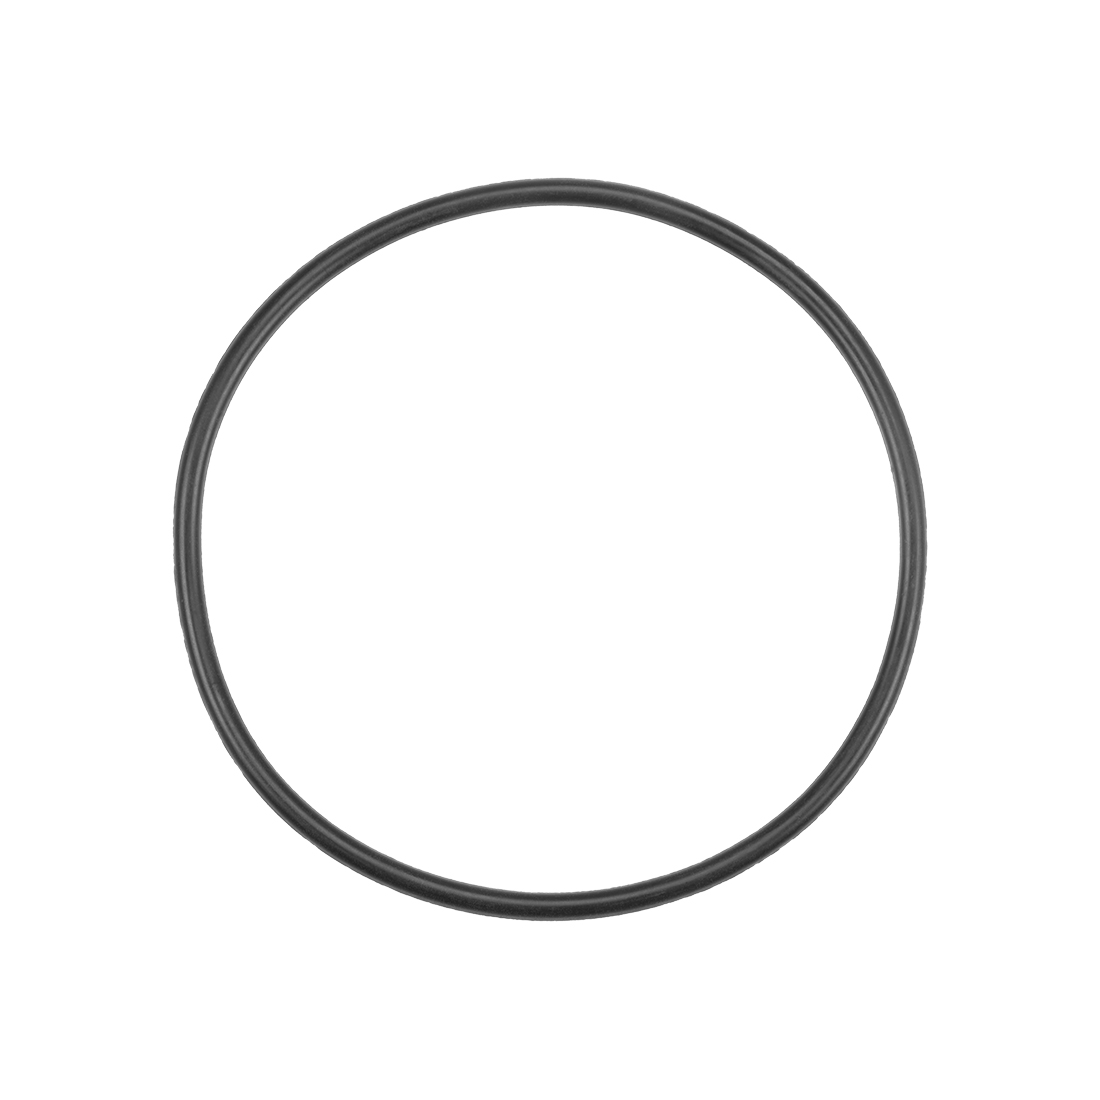 O-Rings Nitrile Rubber 63mm x 68.3mm x 2.65mm Round Seal Gasket